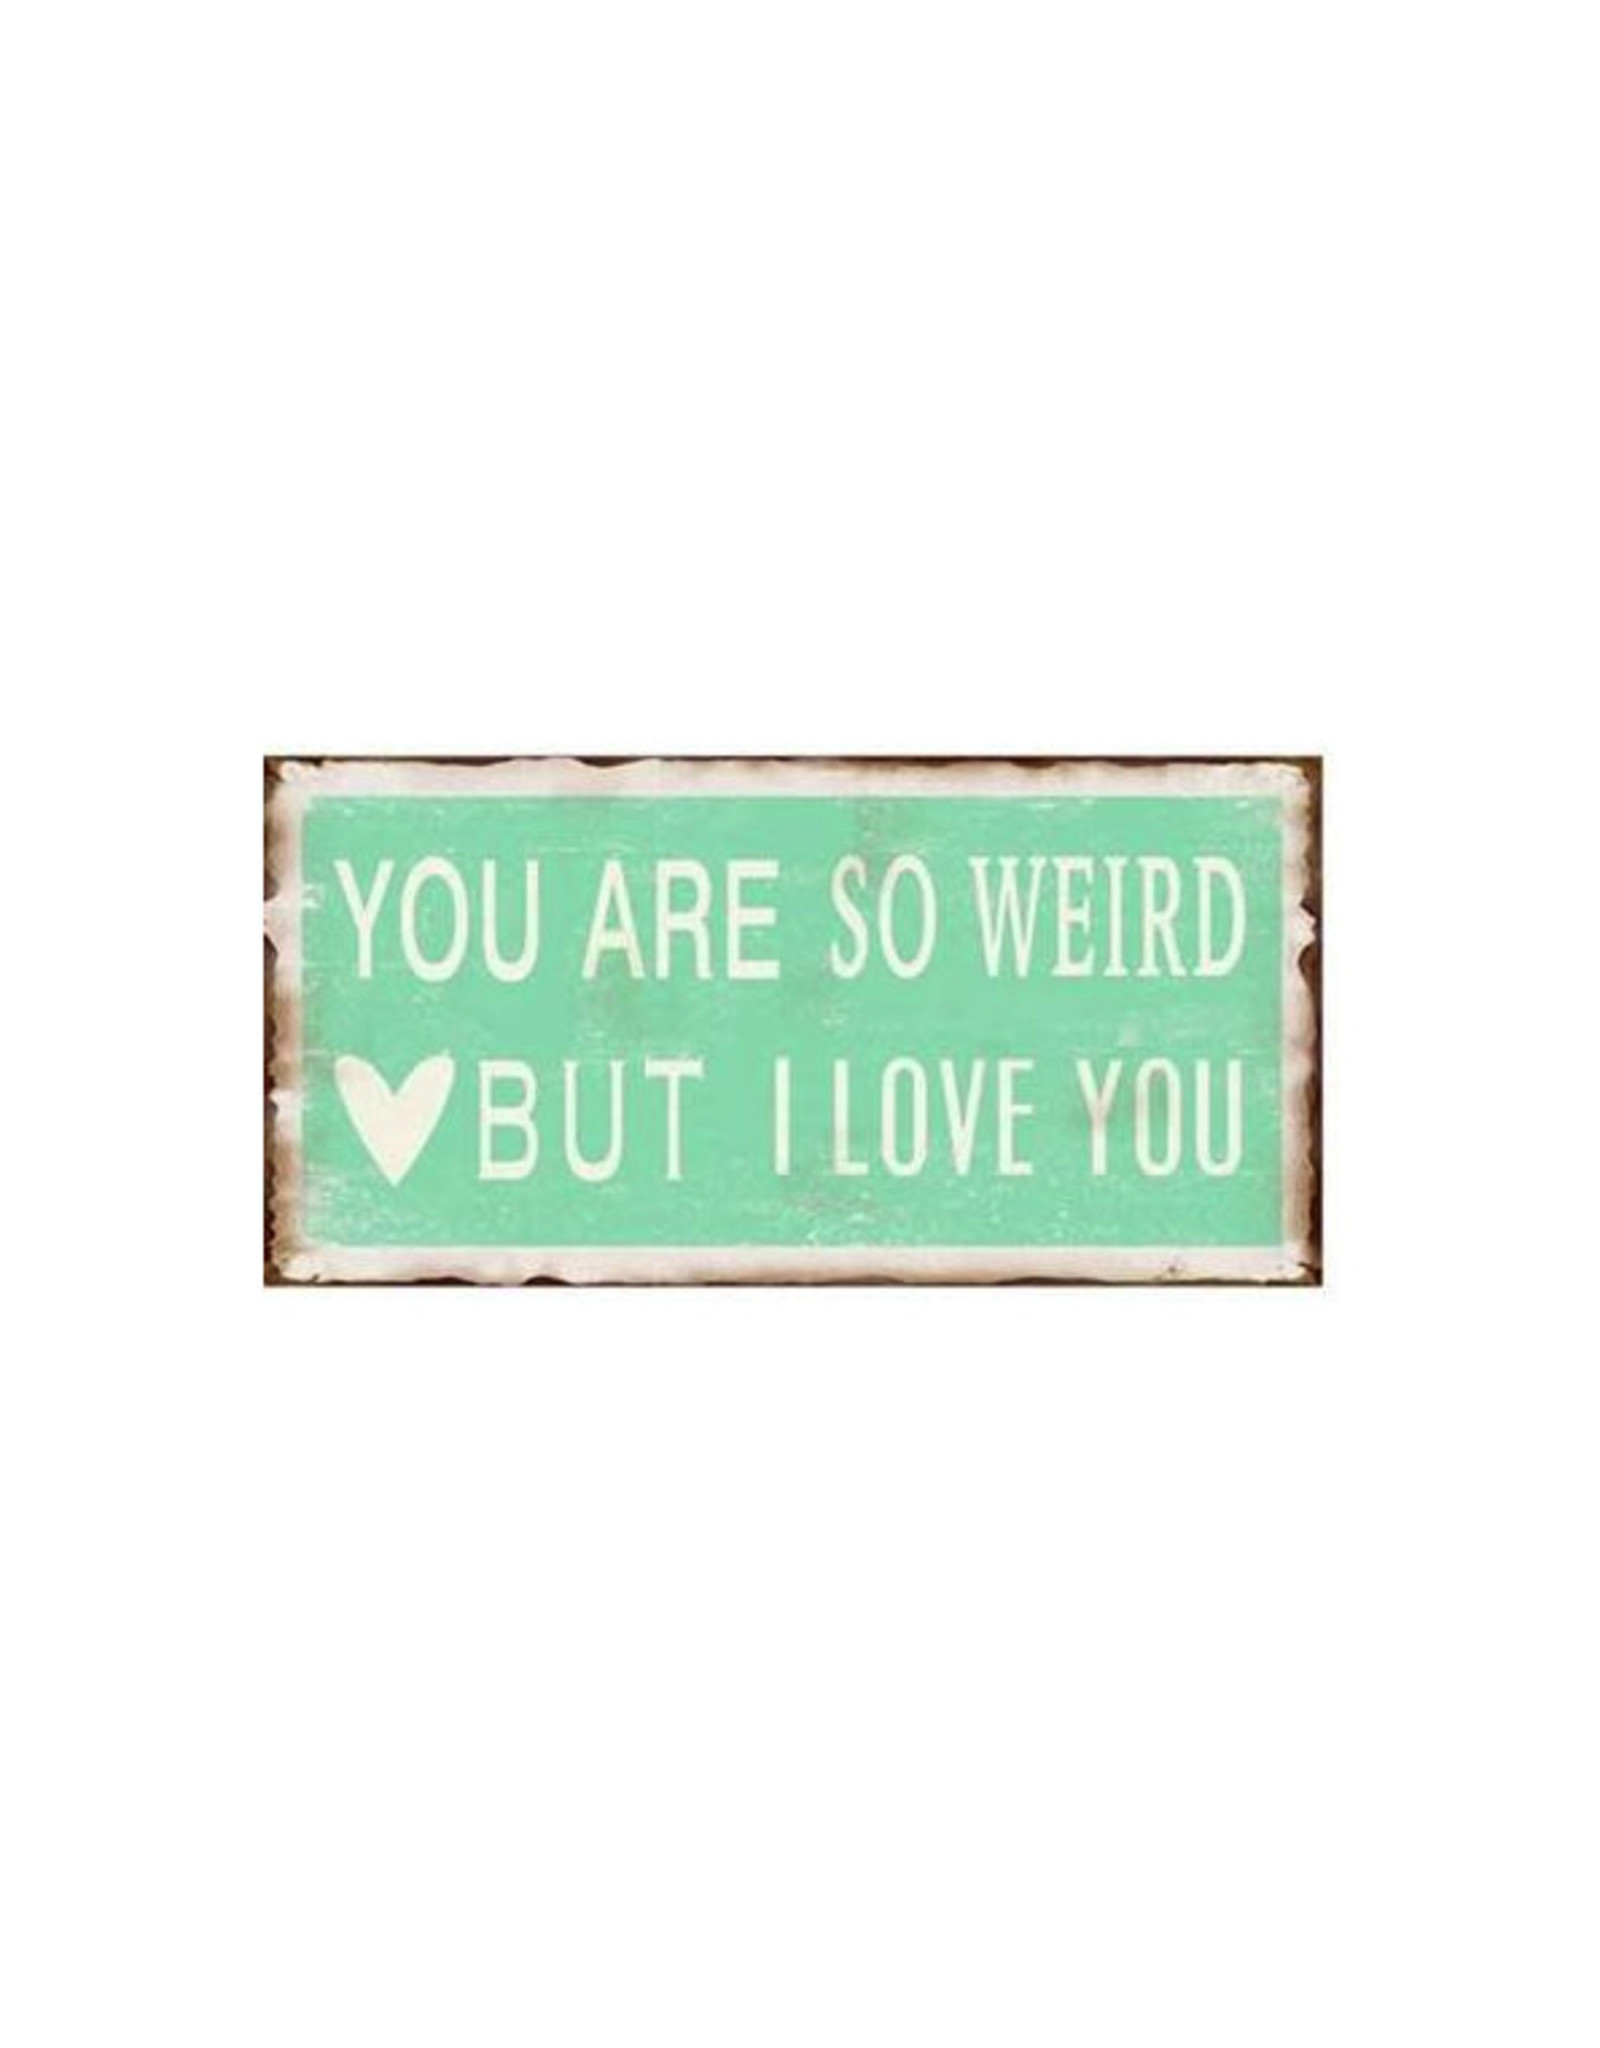 magnet with text: you are weird but I love you